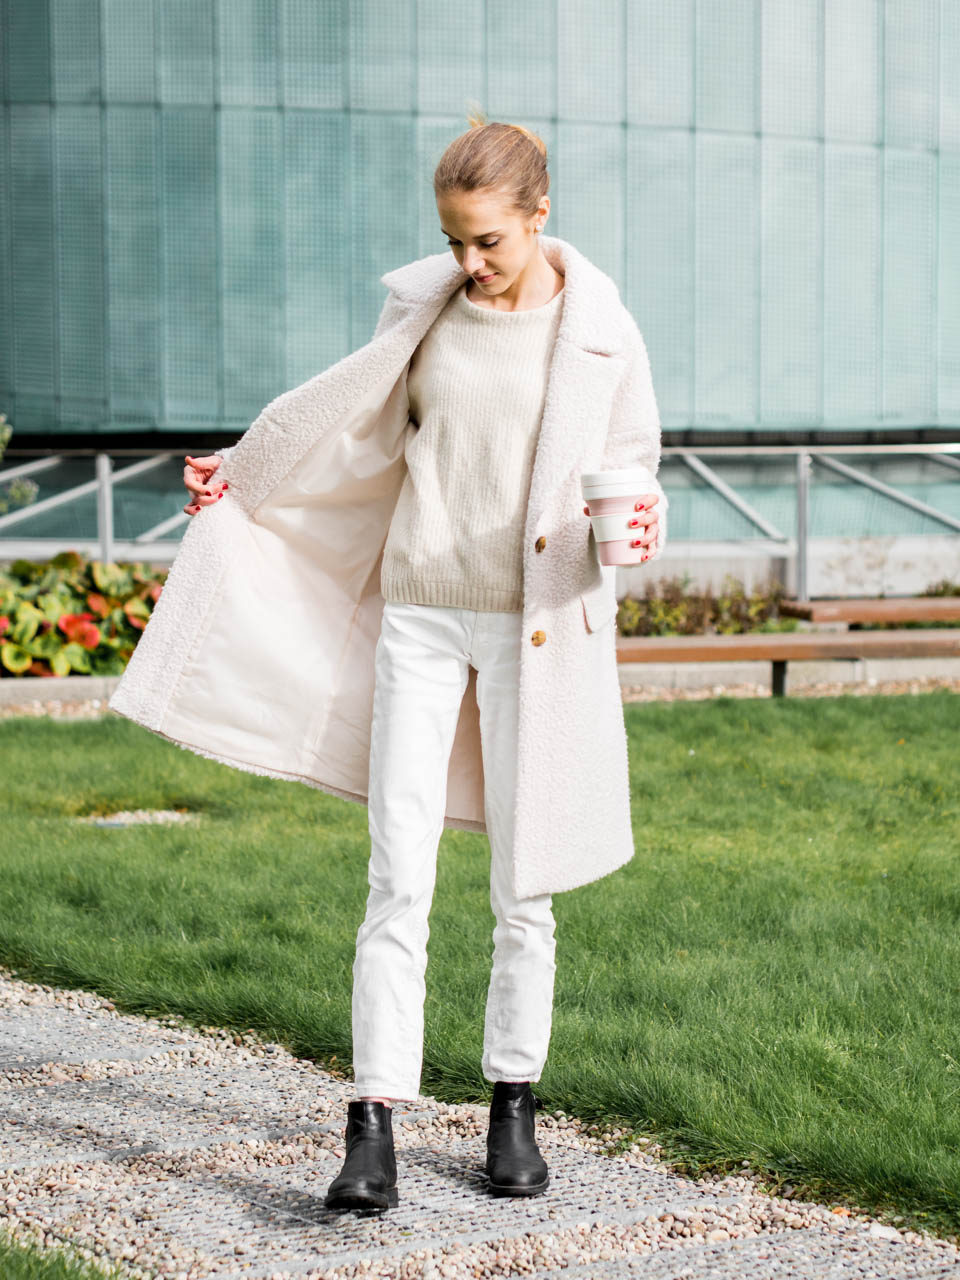 All white autumn/winter outfit with teddy coat - Kokovalkoinen syys-/talviasu teddy-takin kanssa